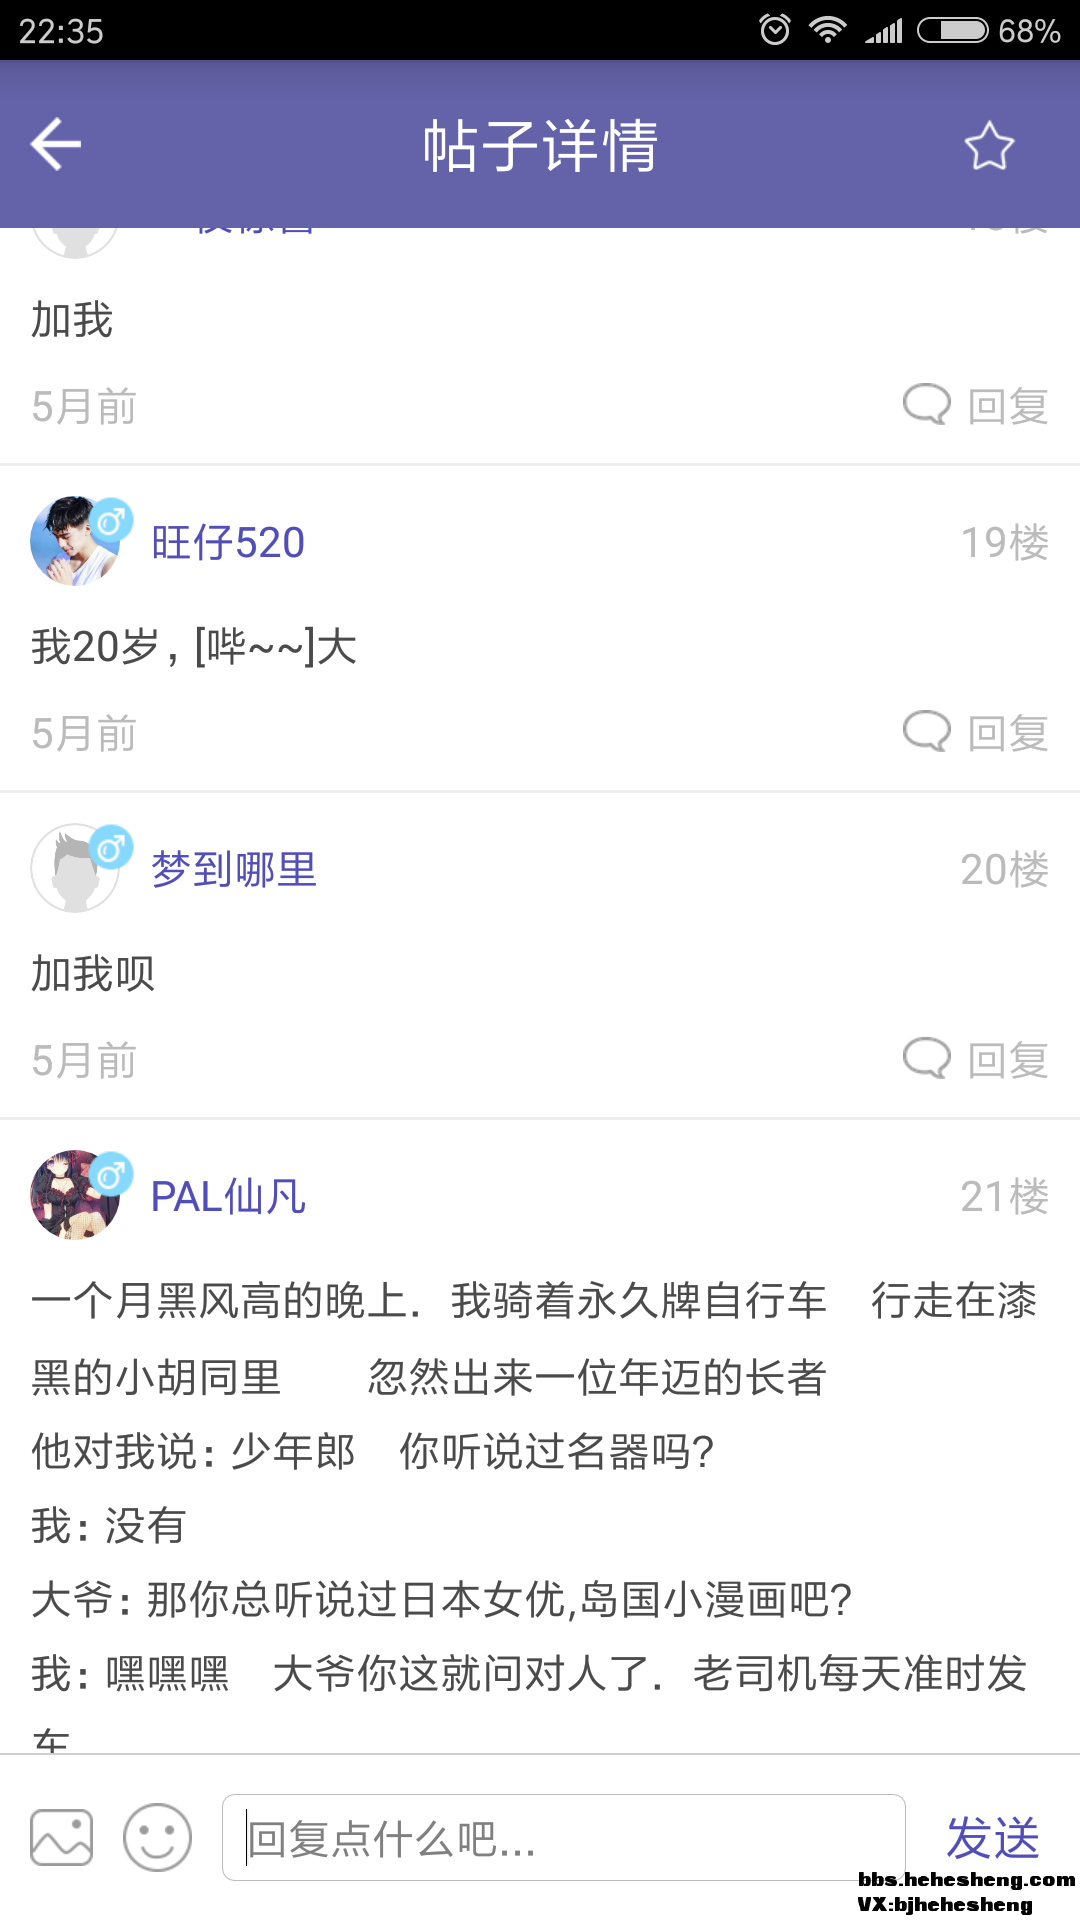 Screenshot_2018-01-19-22-35-50-604_com.mengxia.lo.png